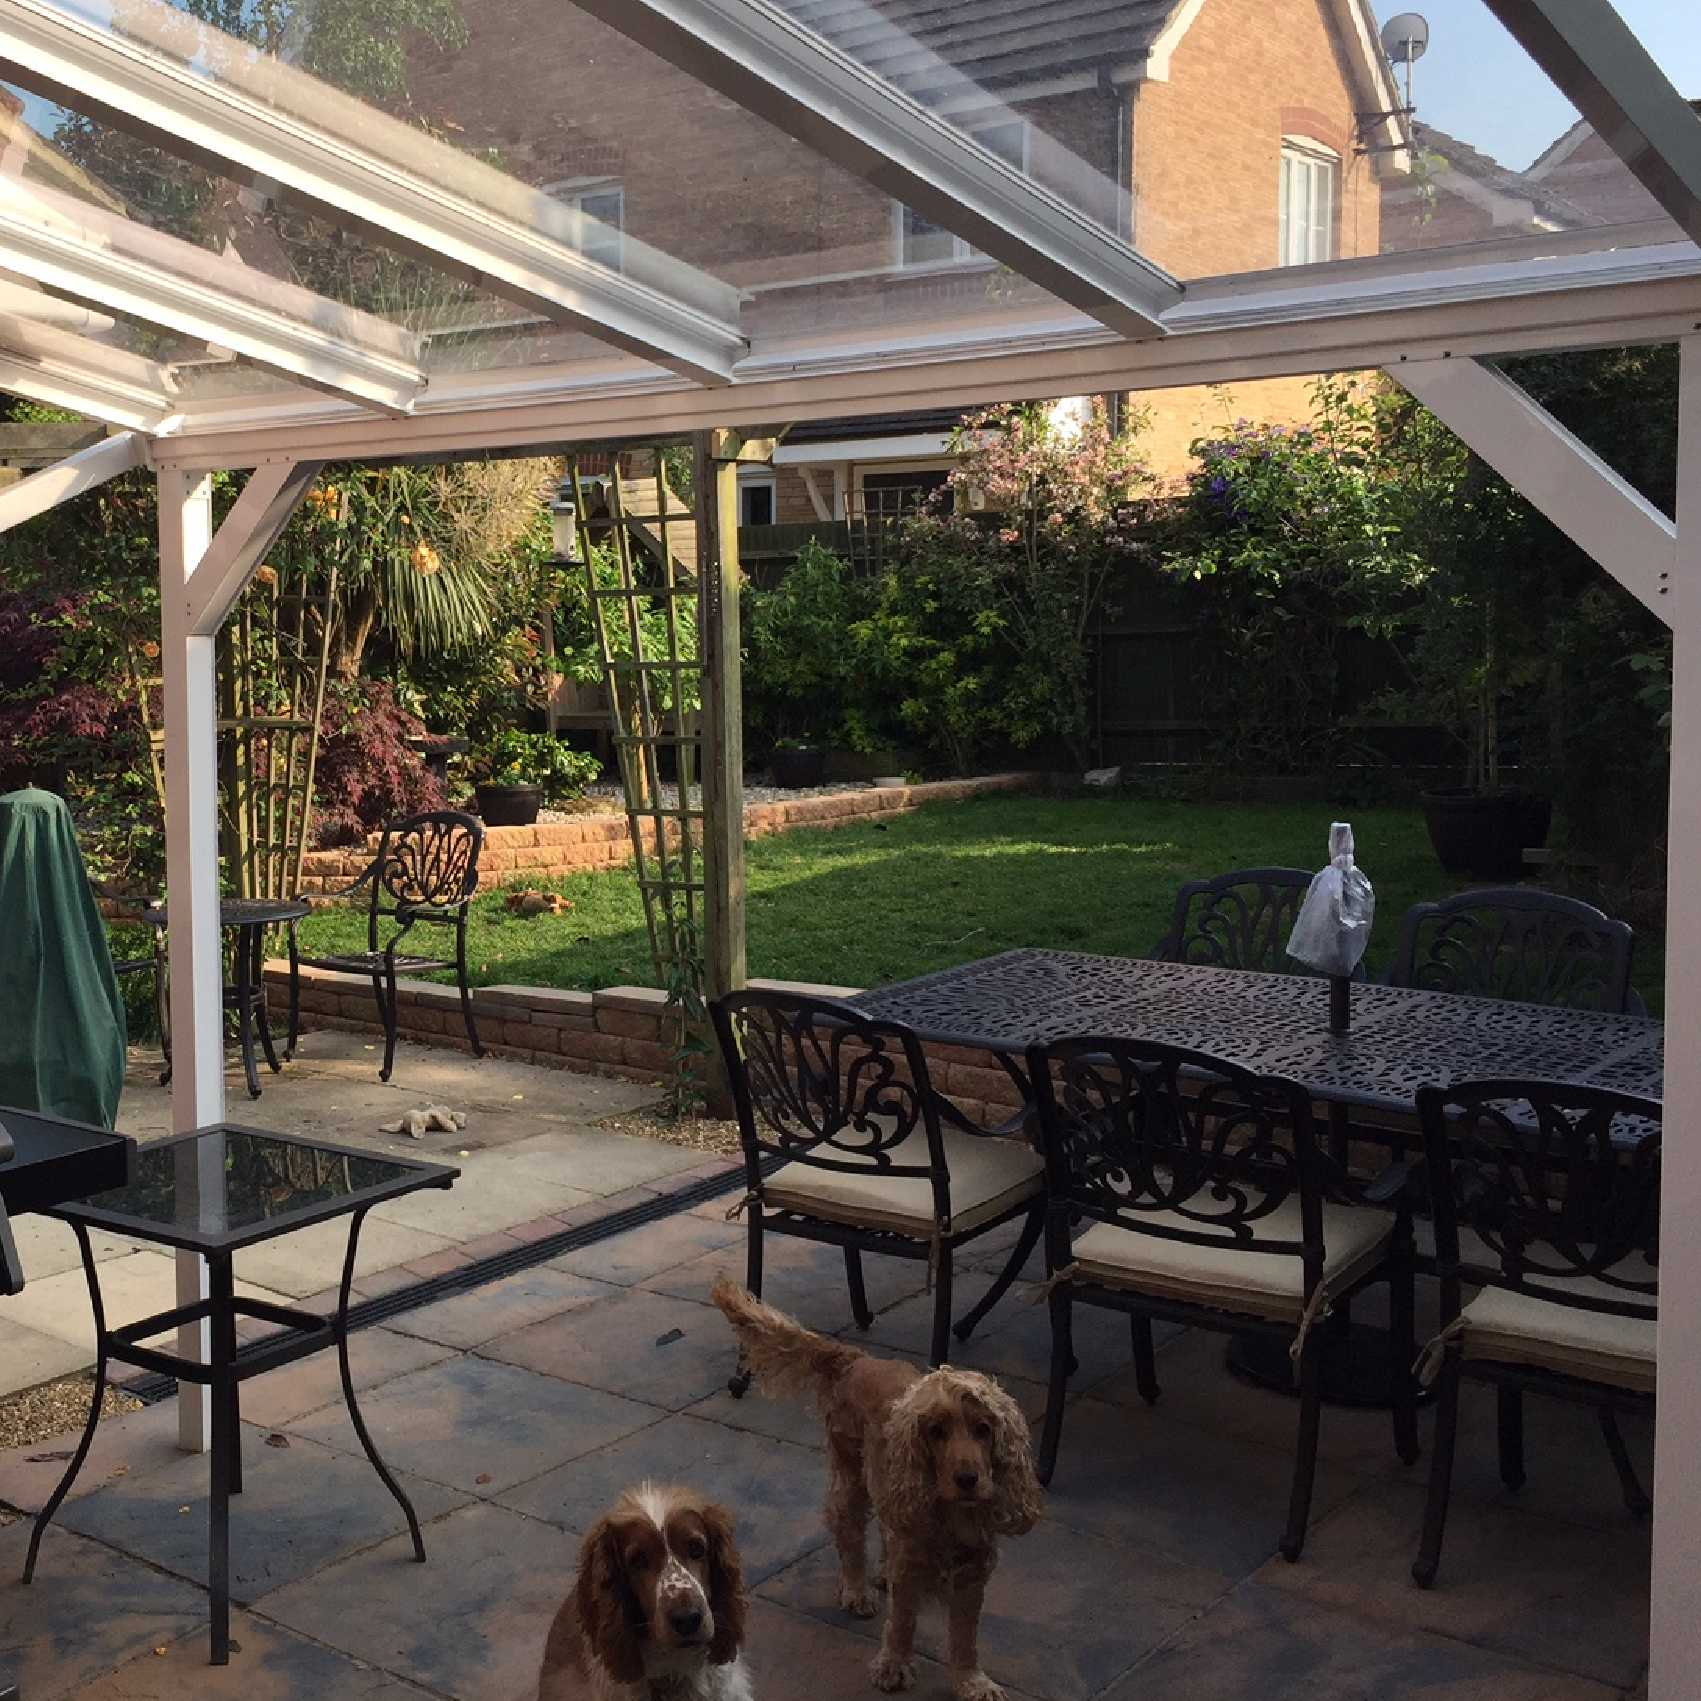 Affordable Omega Smart White Lean-To Canopy with 6mm Glass Clear Plate Polycarbonate Glazing - 9.1m (W) x 2.0m (P), (5) Supporting Posts